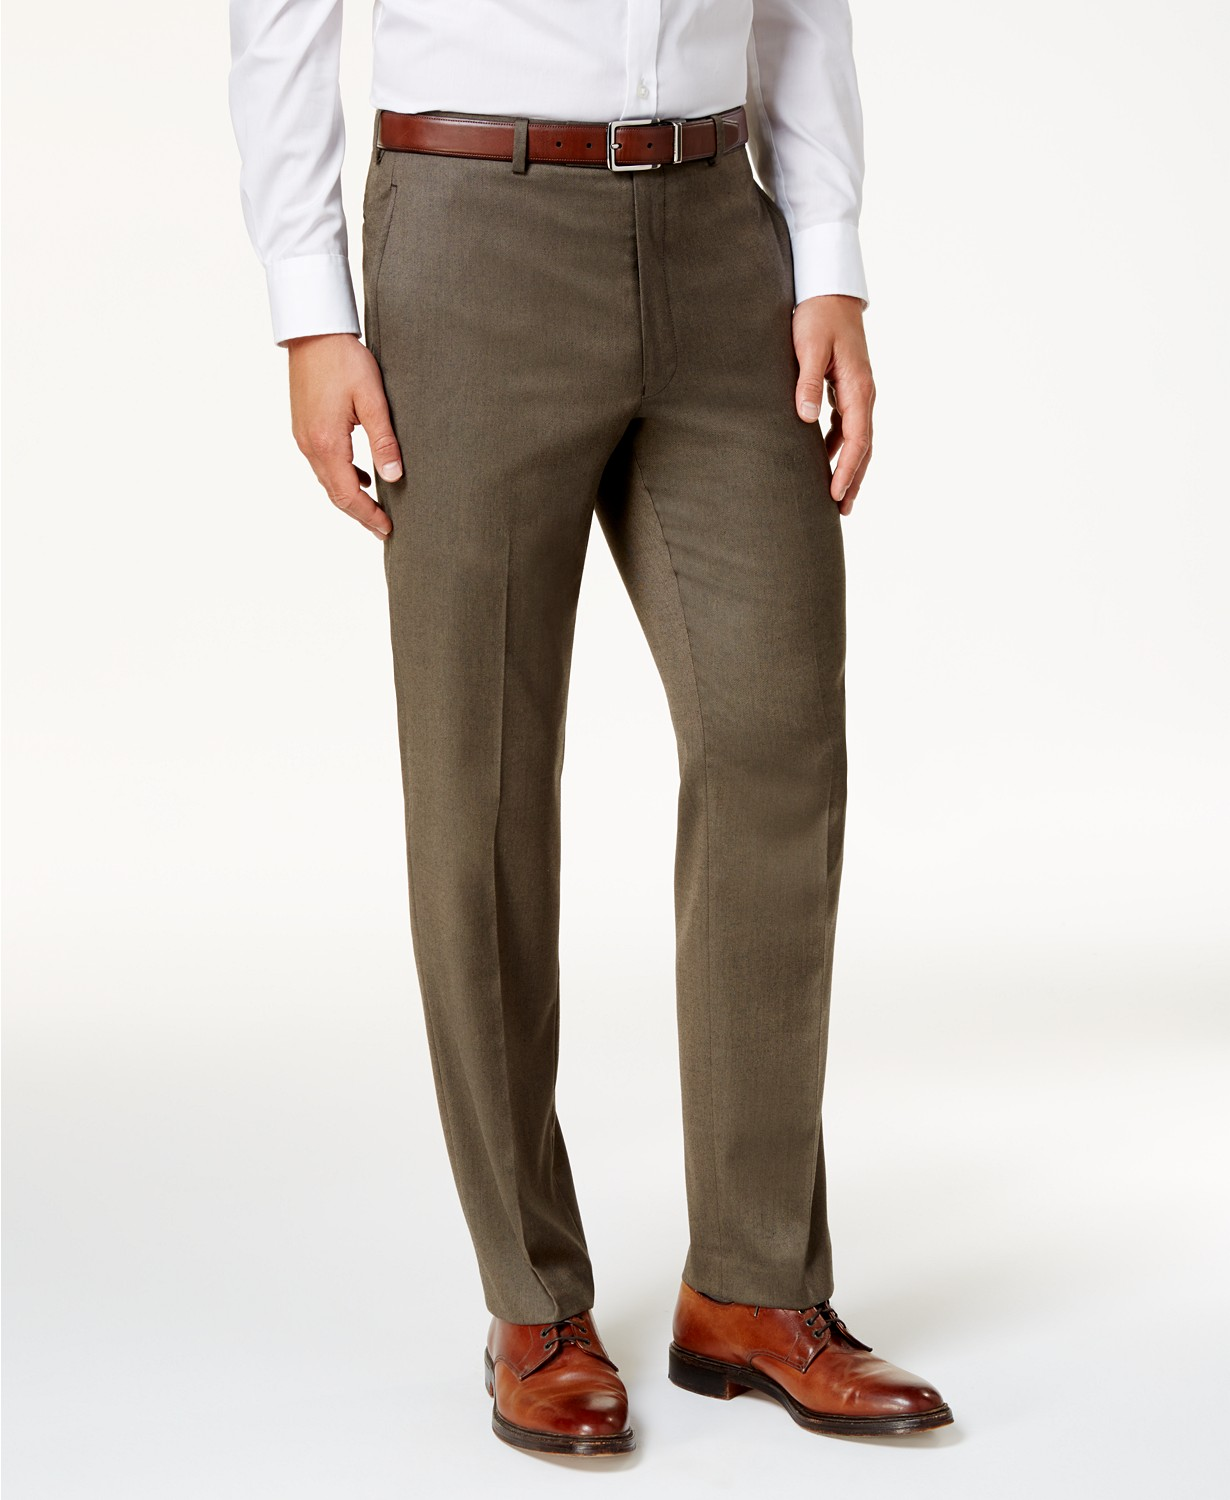 Ralph Lauren Men's Covert Twill Ultraflex Dress Pants